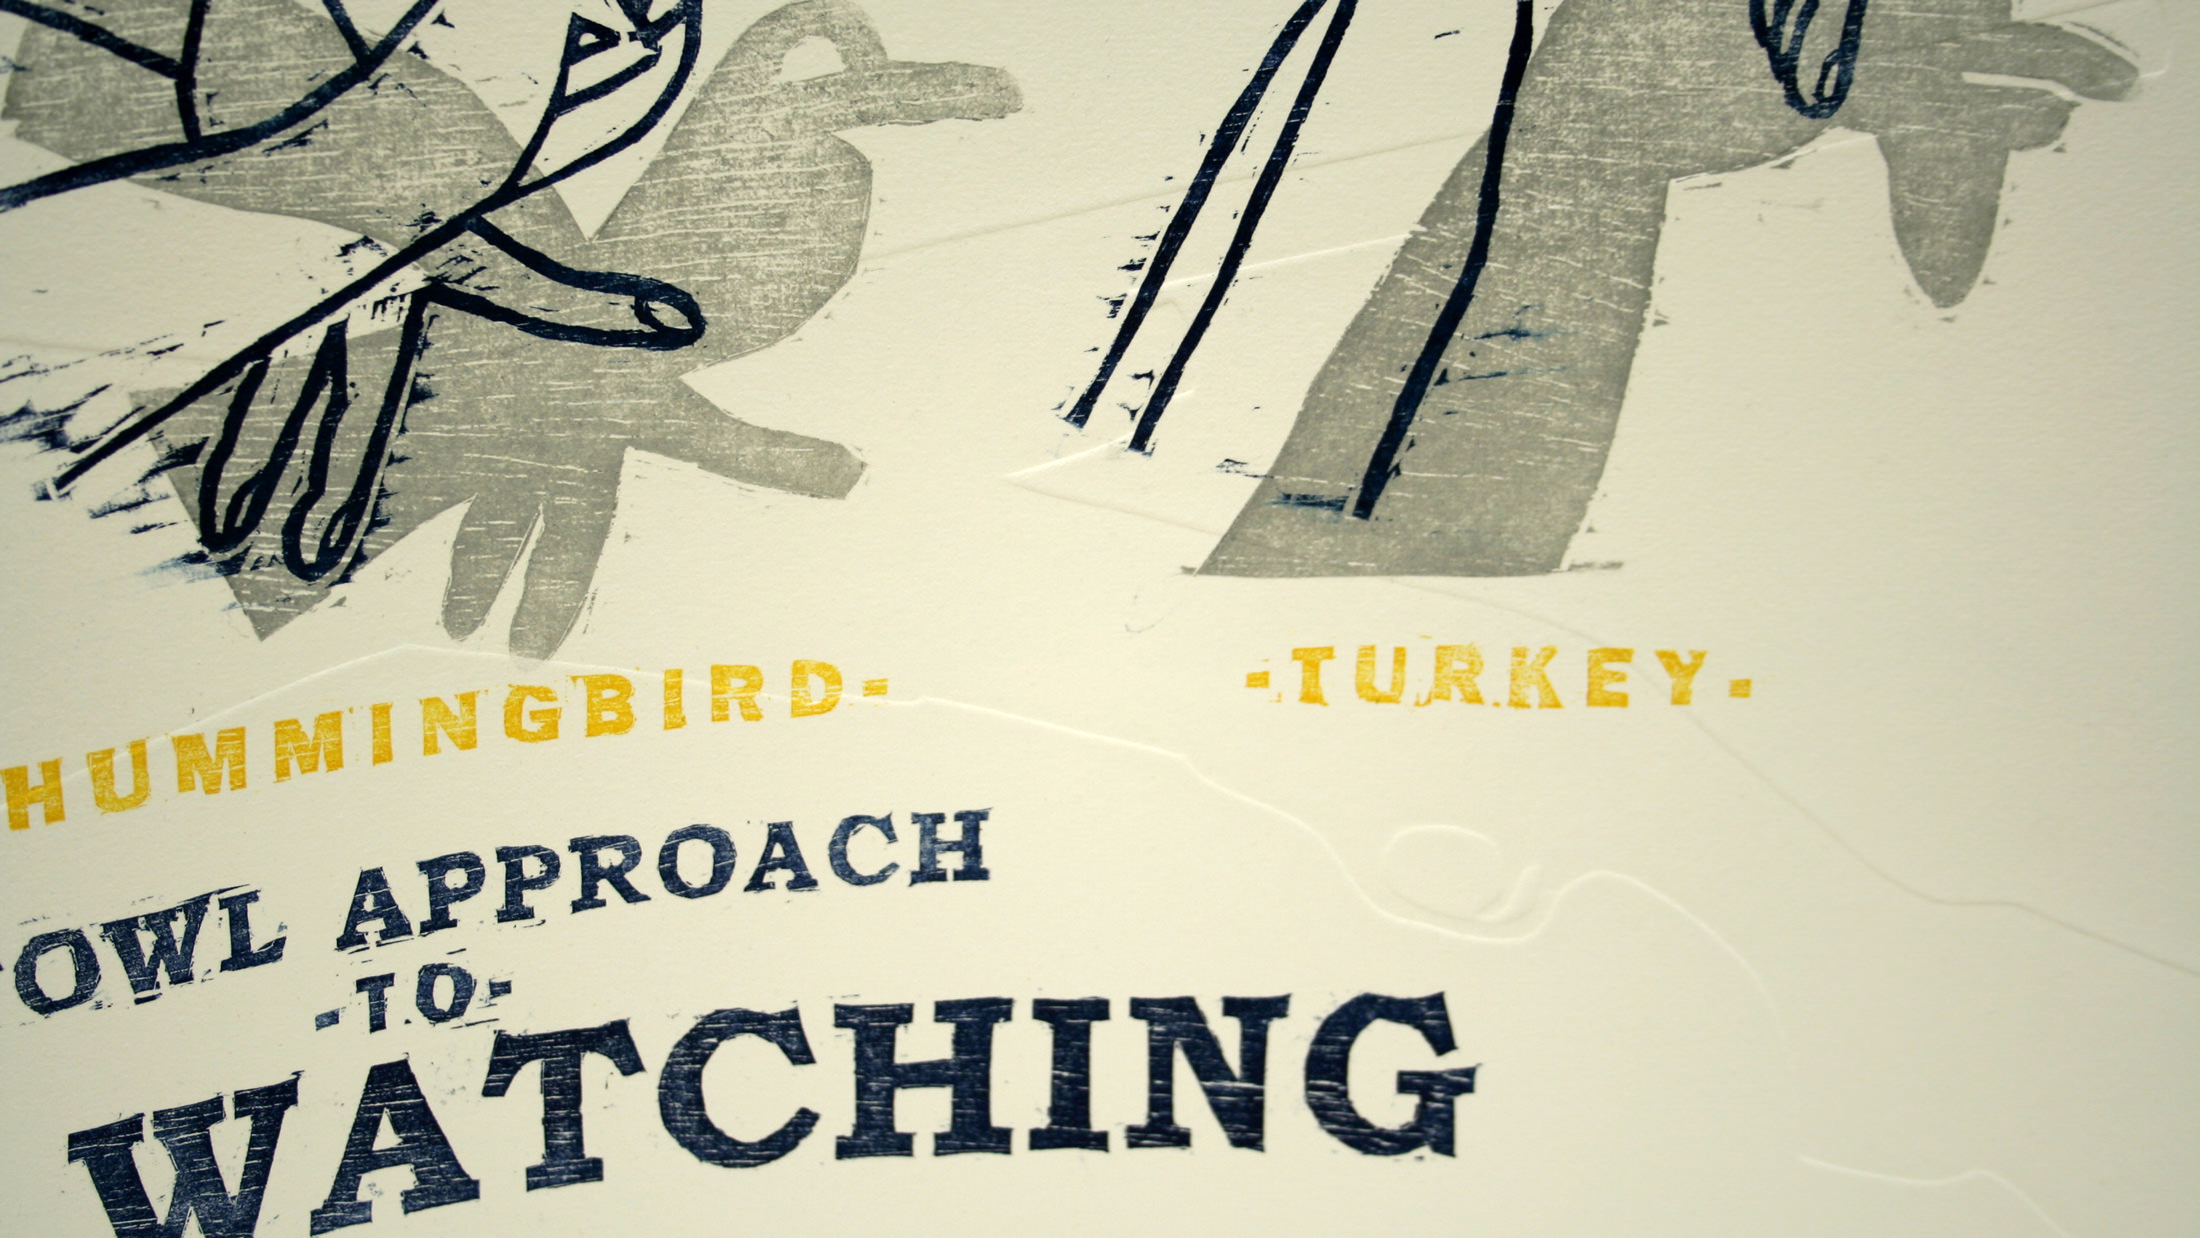 Poster image showing the Fowl Approach to Bird Watching print being held.